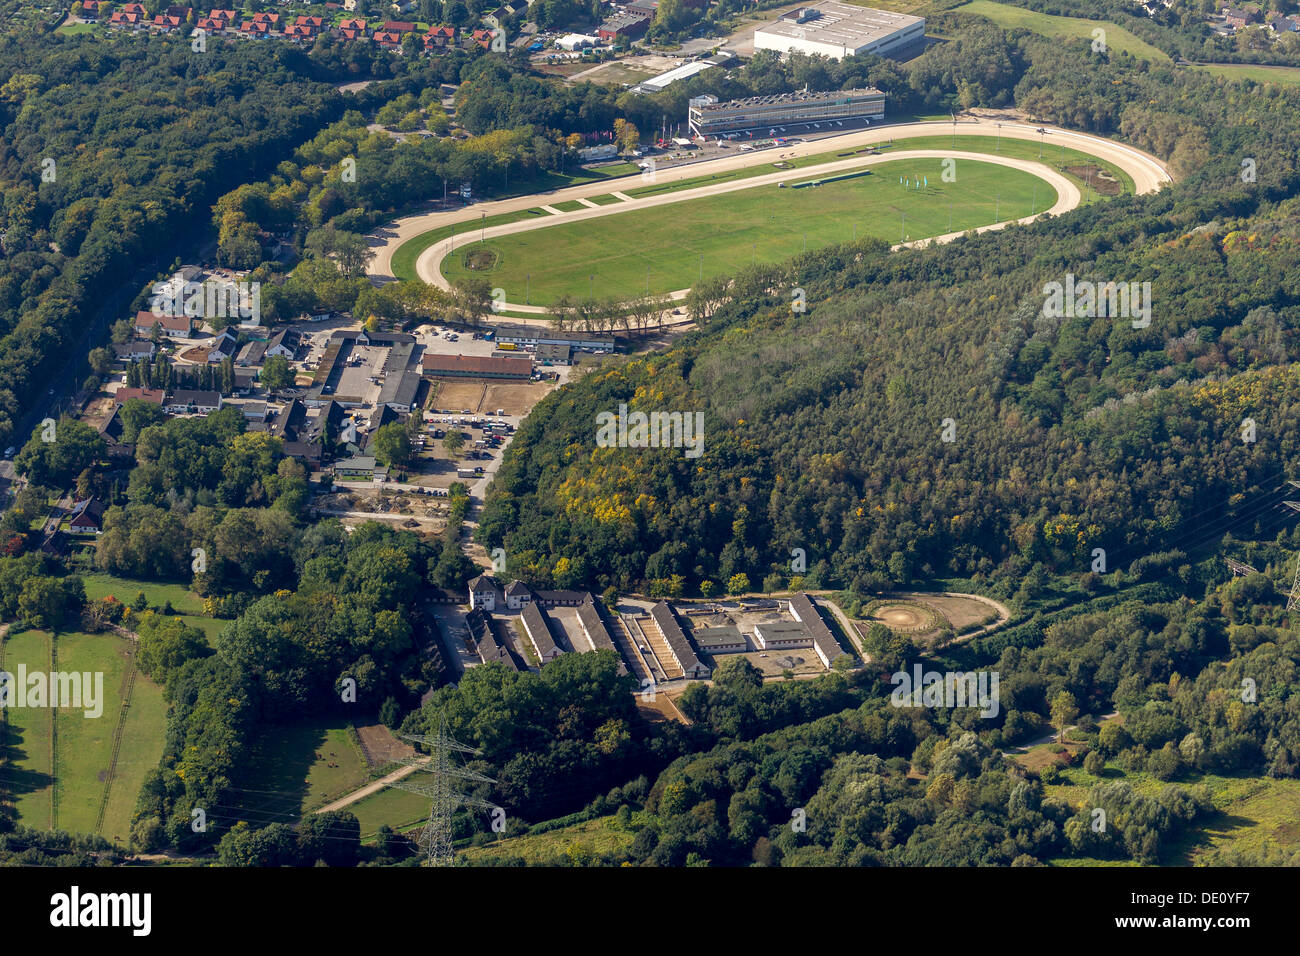 Aerial view, Feldmark trotting course with stables, Gelsenkirchen, Ruhr area, North Rhine-Westphalia - Stock Image